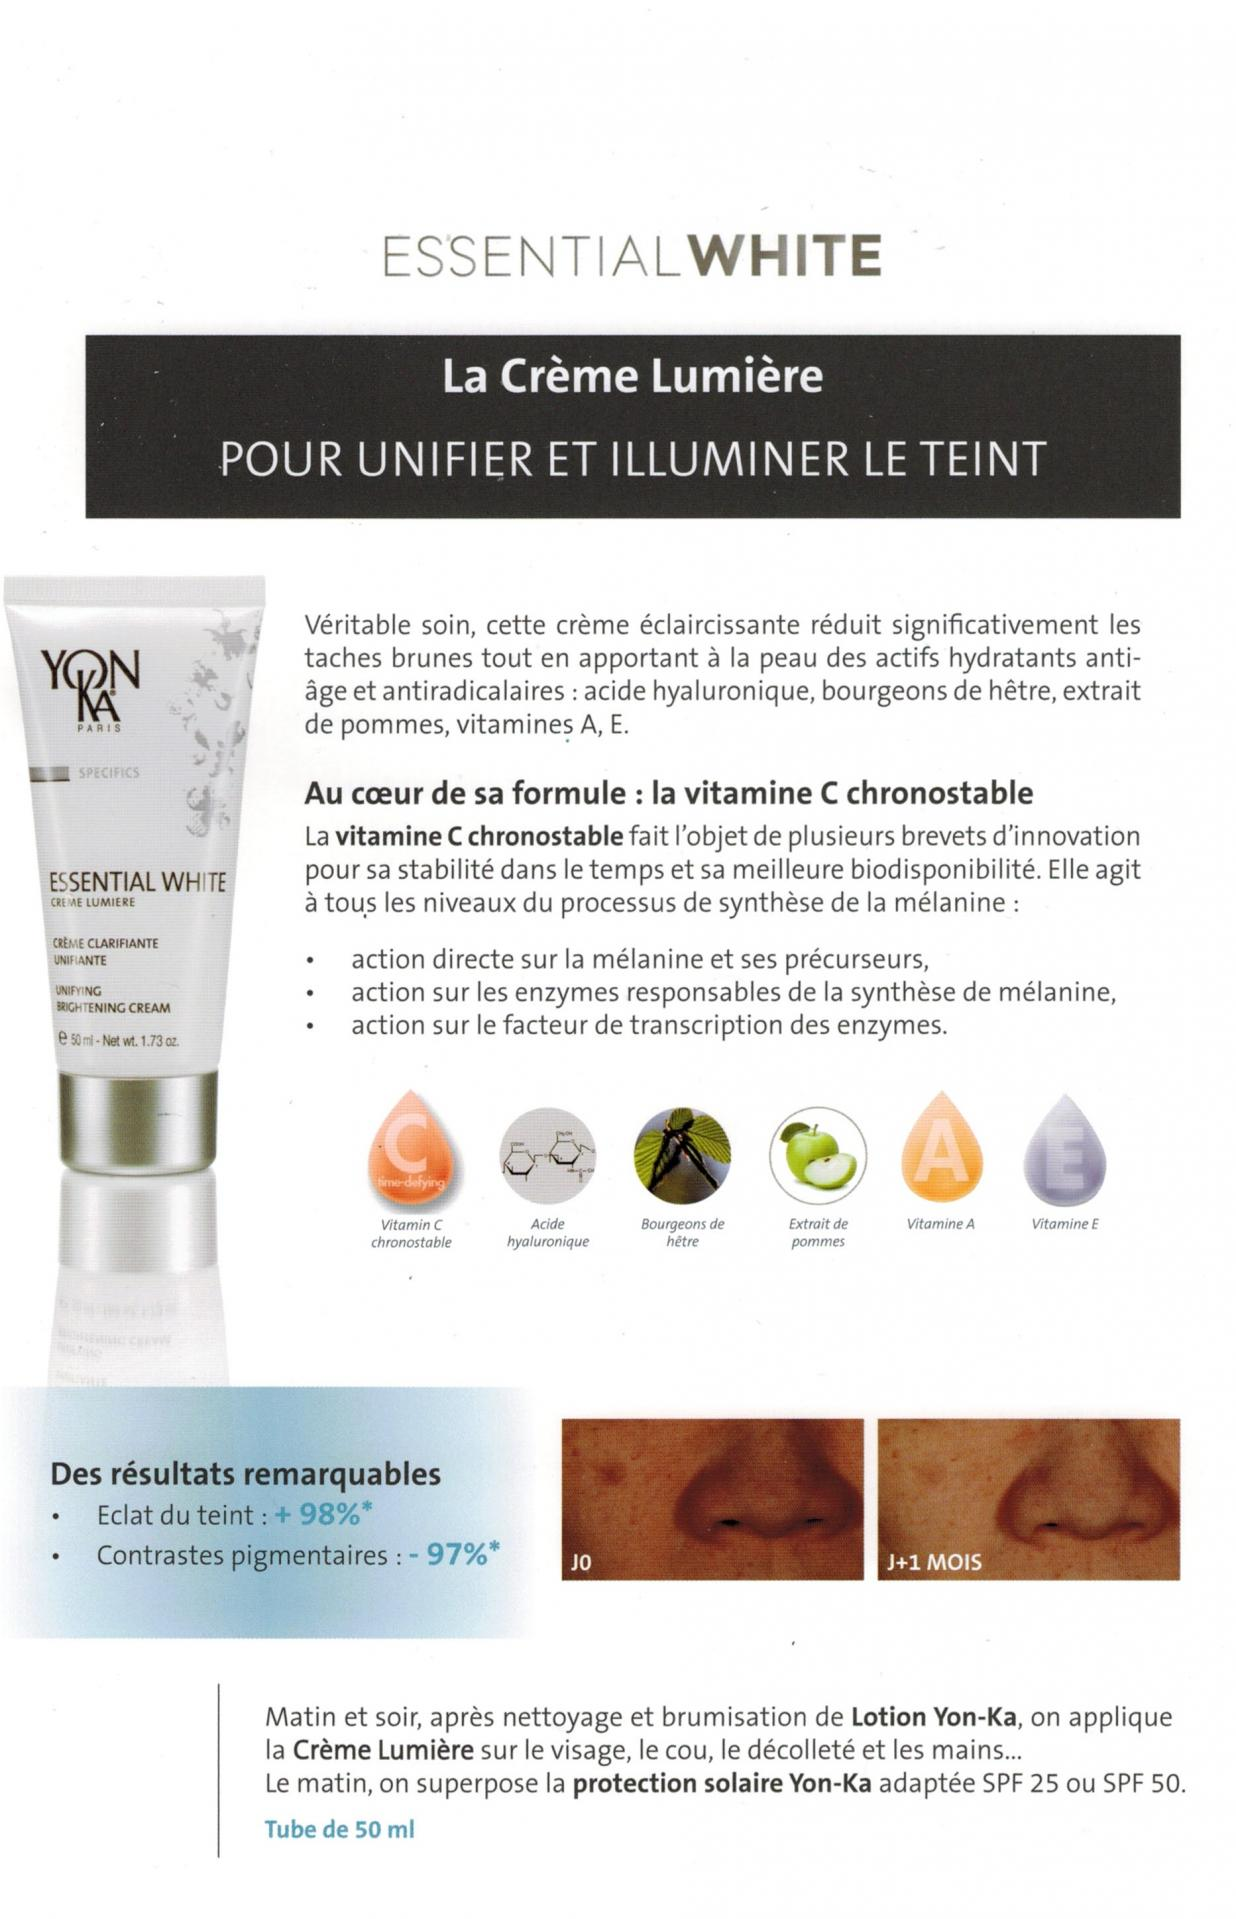 Explication creme leumiere